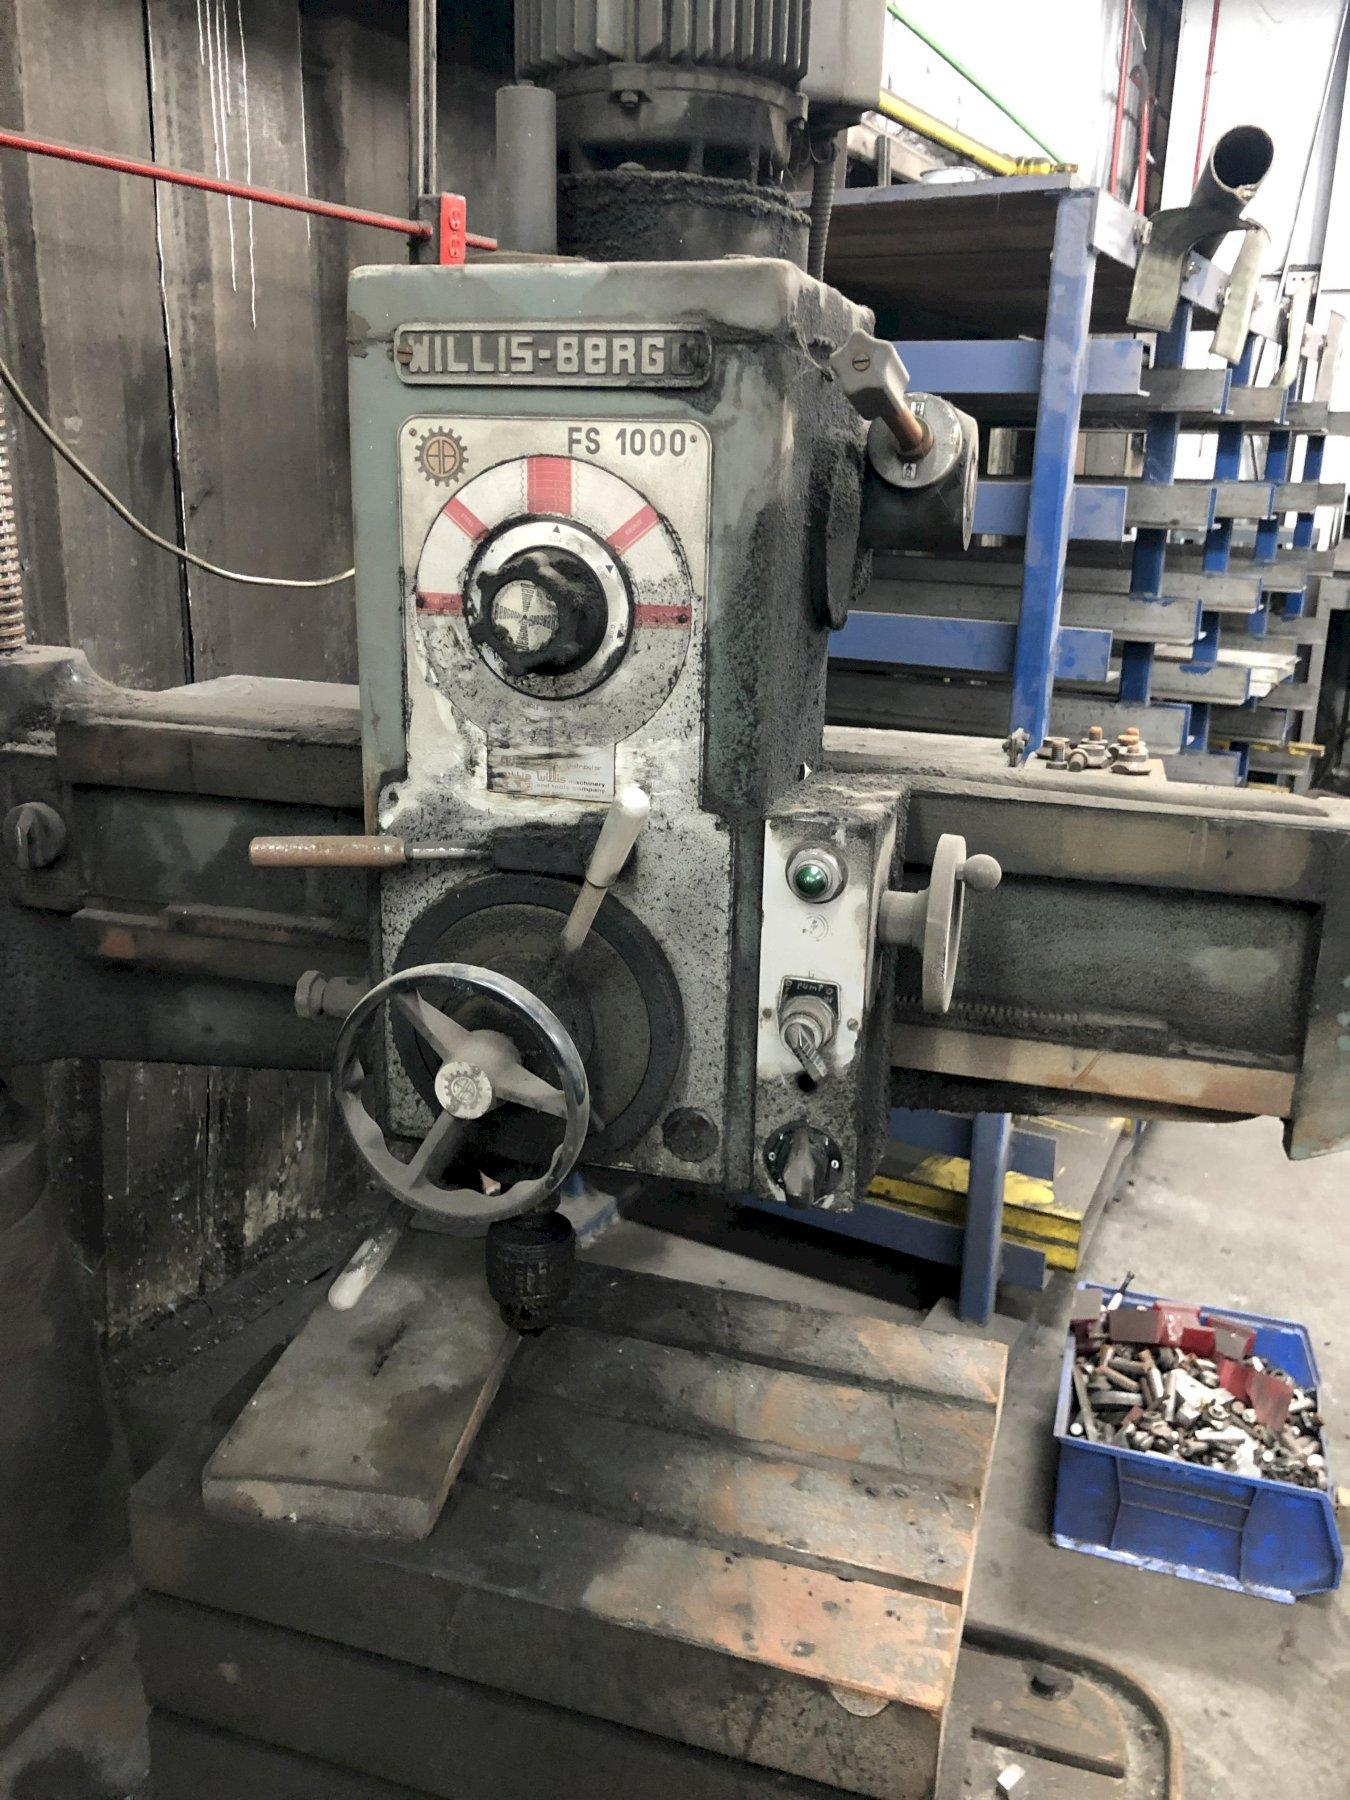 WILLIS BERGO 4' RADIAL DRILL MODEL FS1000 WITH BOX TABLE